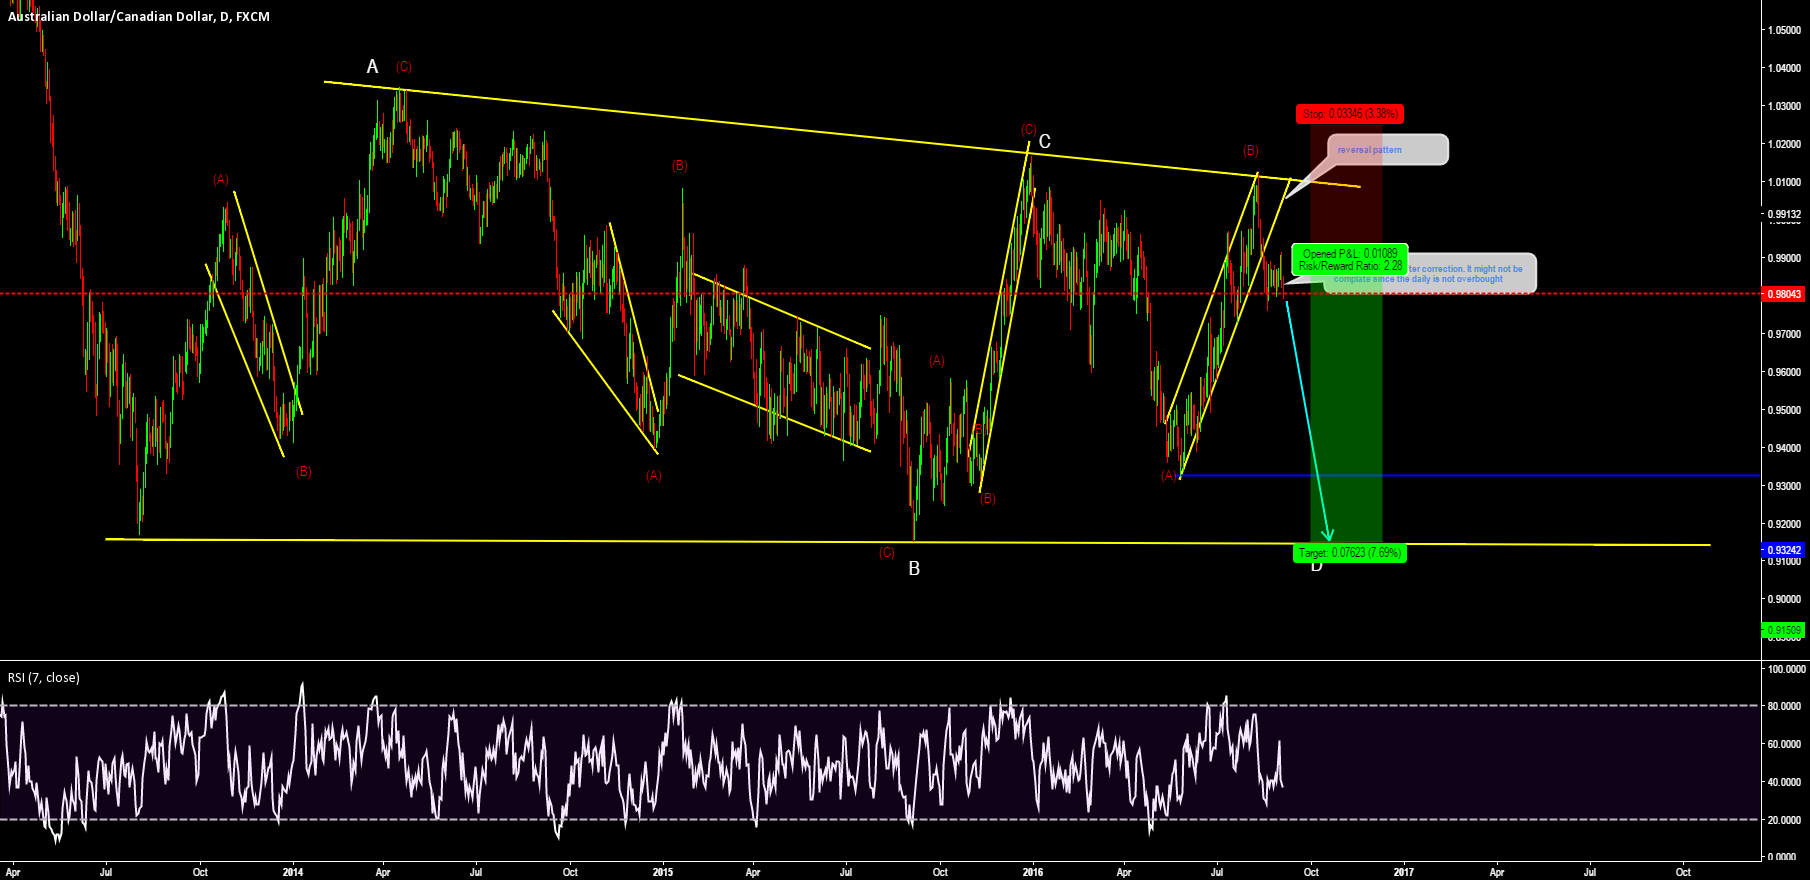 Looking to sell AUDCAD